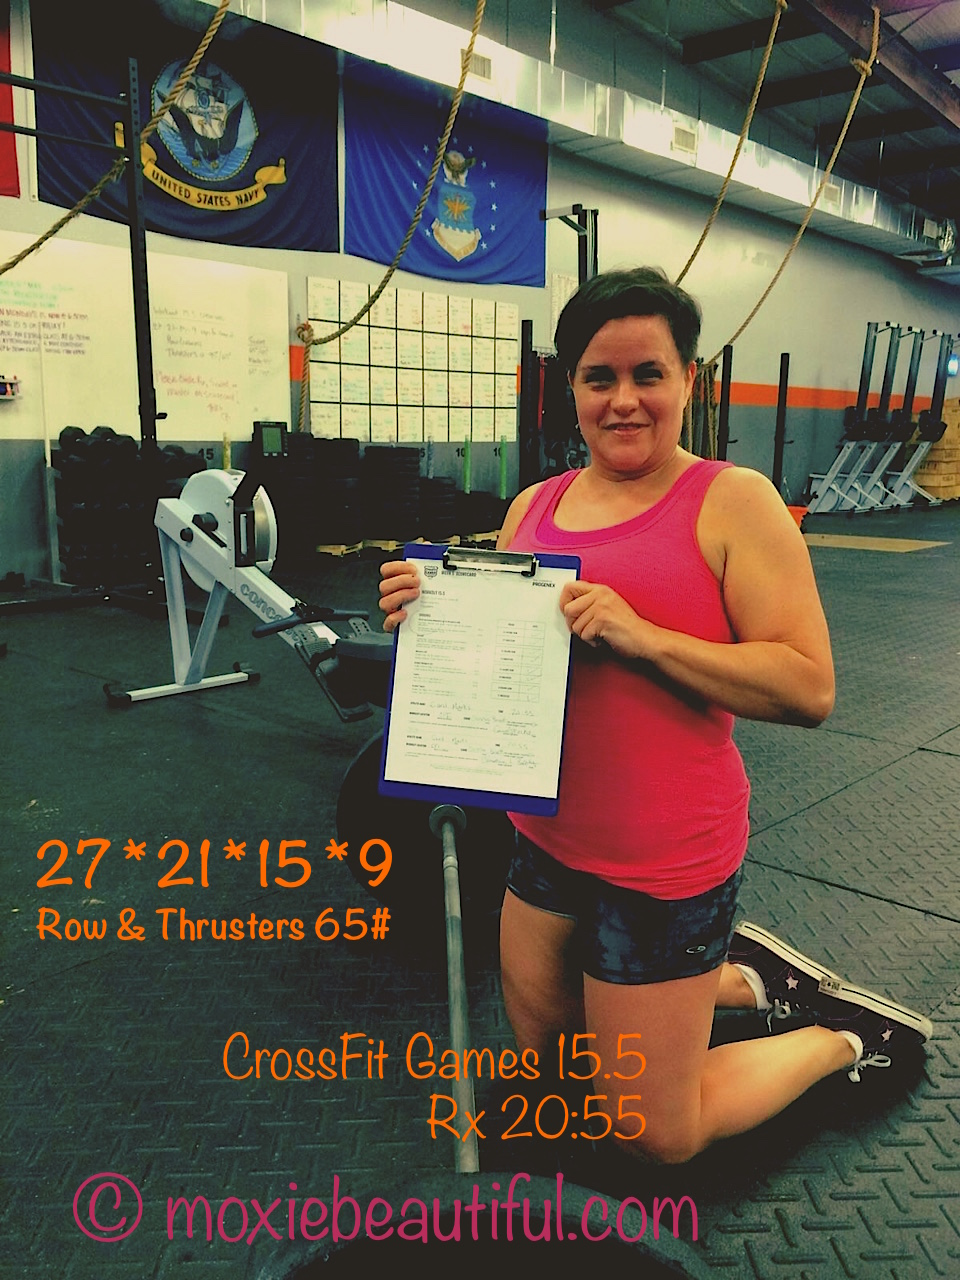 CrossFit Games 15.5 Reflection